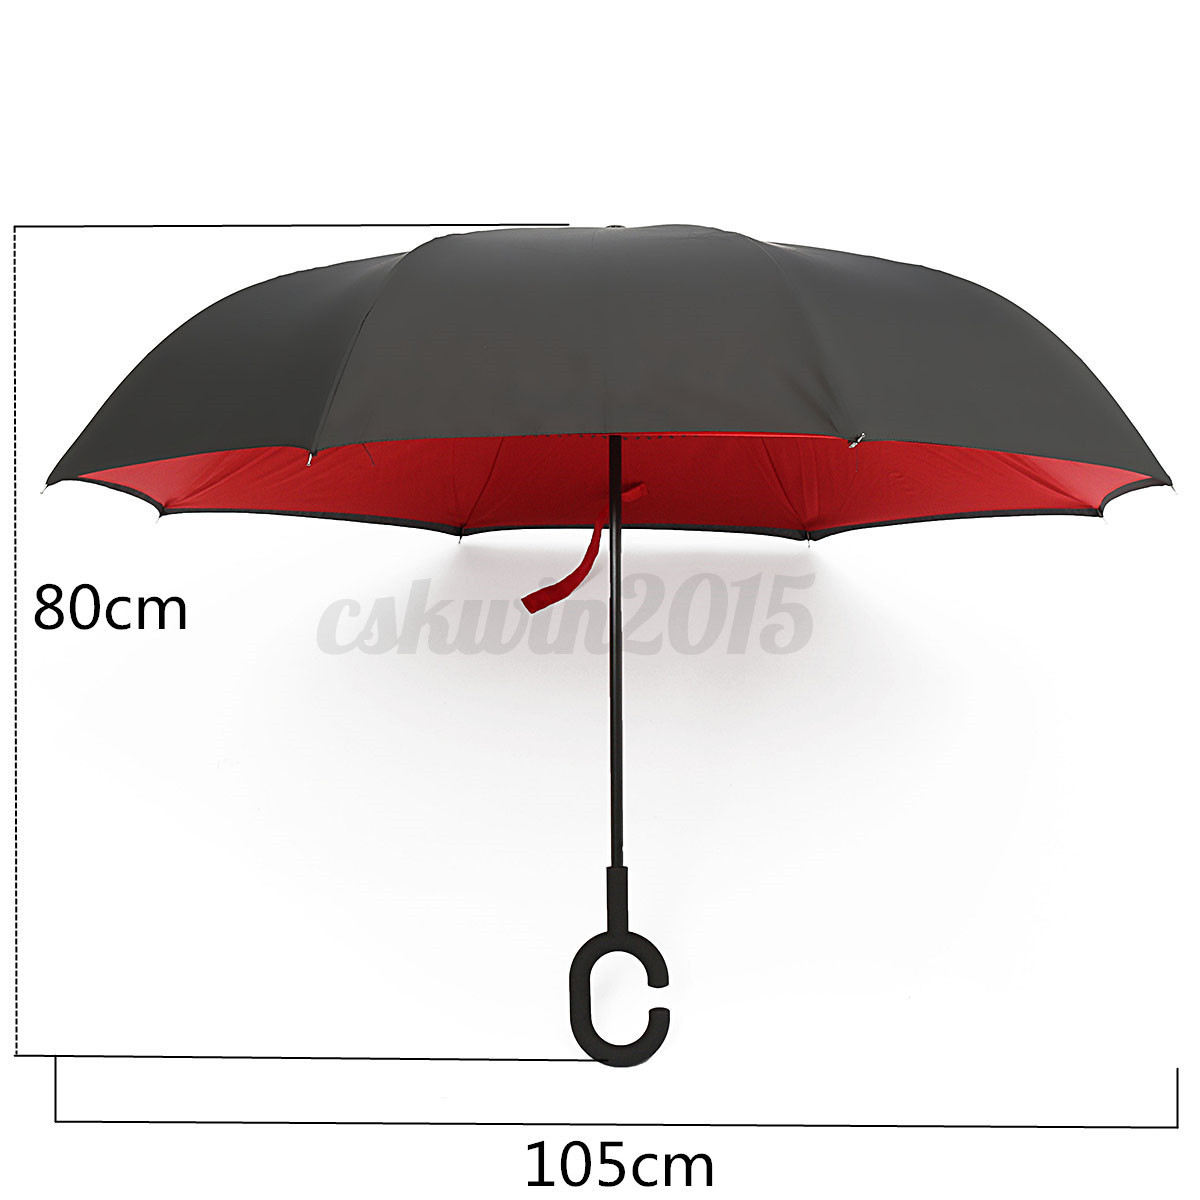 parapluie anti uv vent pluie soleil parasol invers double couche ouverture ebay. Black Bedroom Furniture Sets. Home Design Ideas